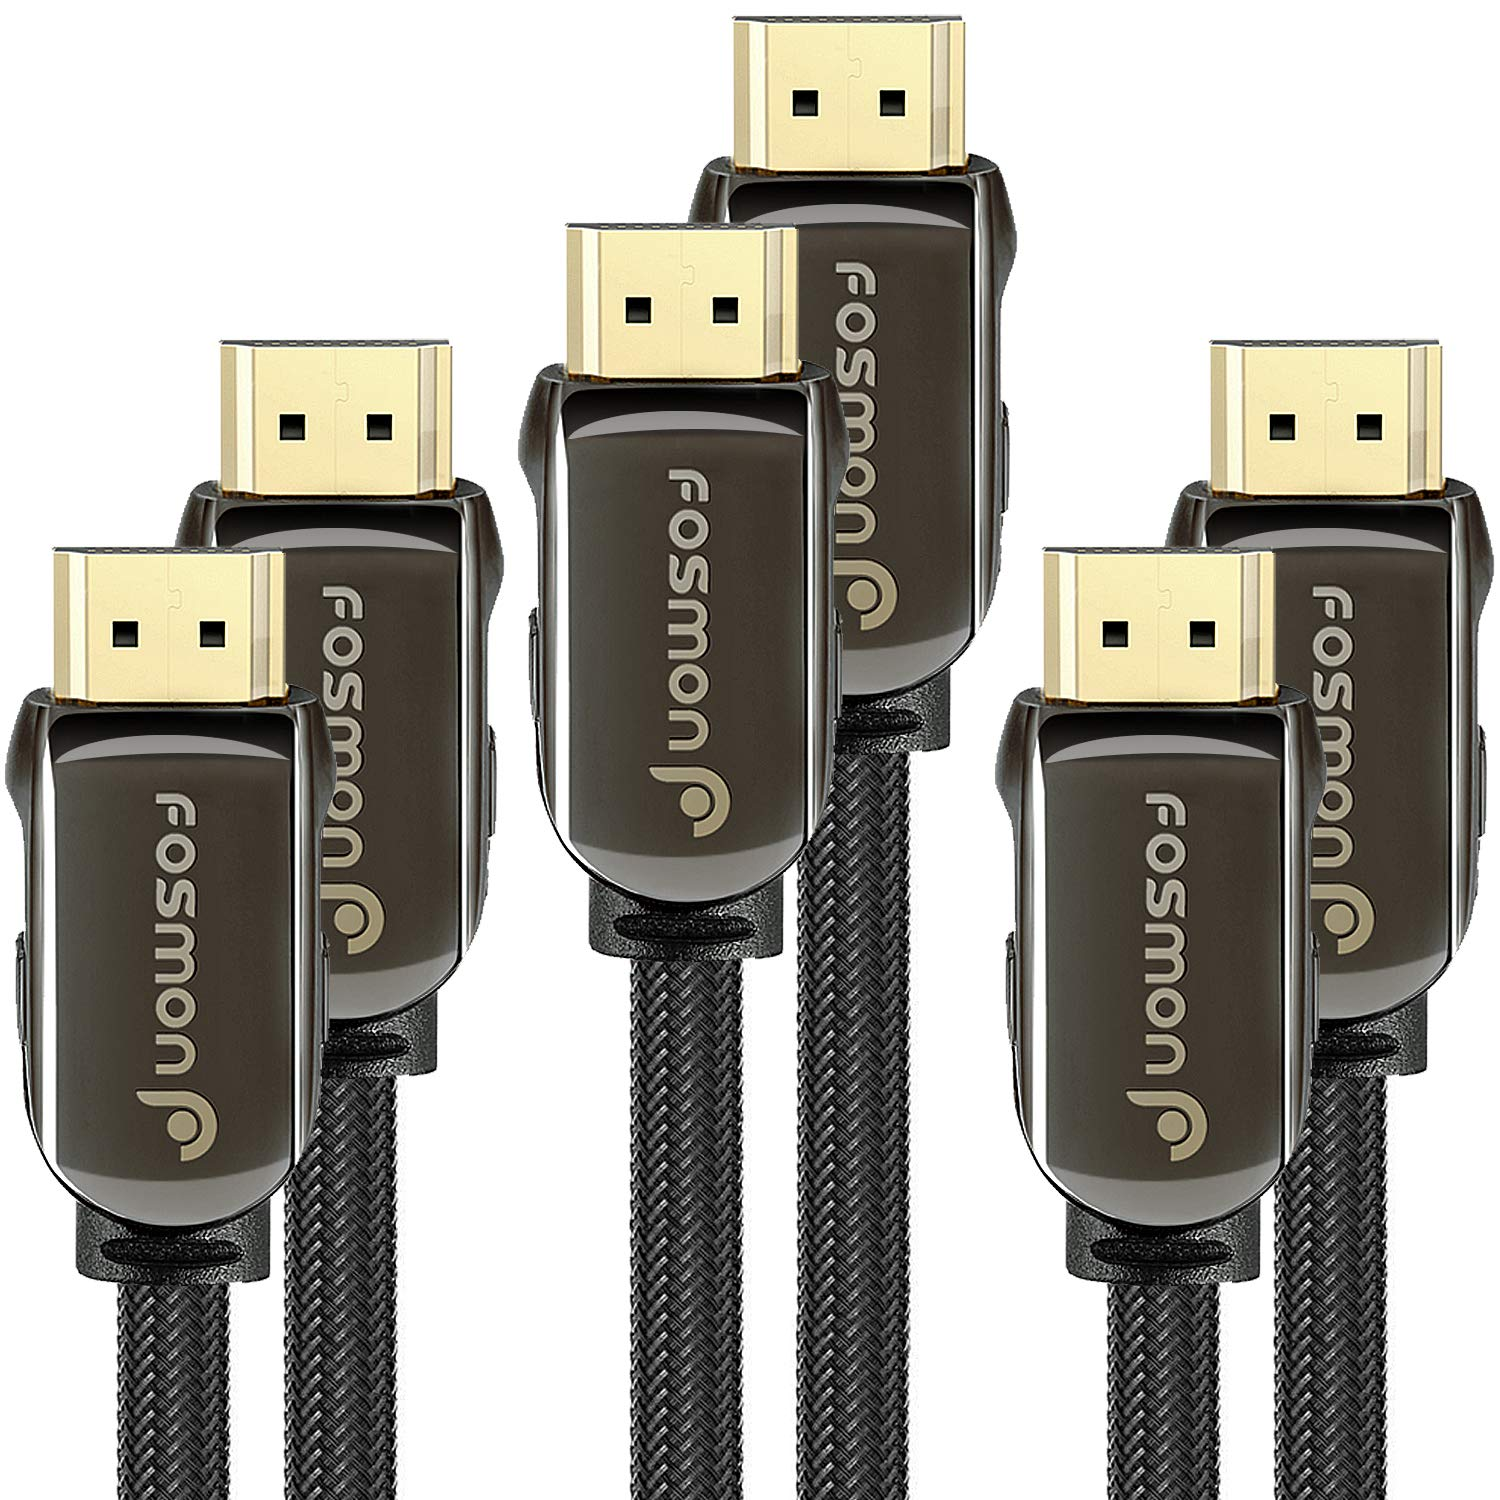 HDMI Cable 10FT (3 Pack) Fosmon CL3 Rated (in-Wall Installation) 4K Latest Standard 2.0 UL Listed Supports 2160p 3D 18Gbps ARC HDR UHD 1080p, Nylon Braided with 24K Gold Plated Connectors by Fosmon